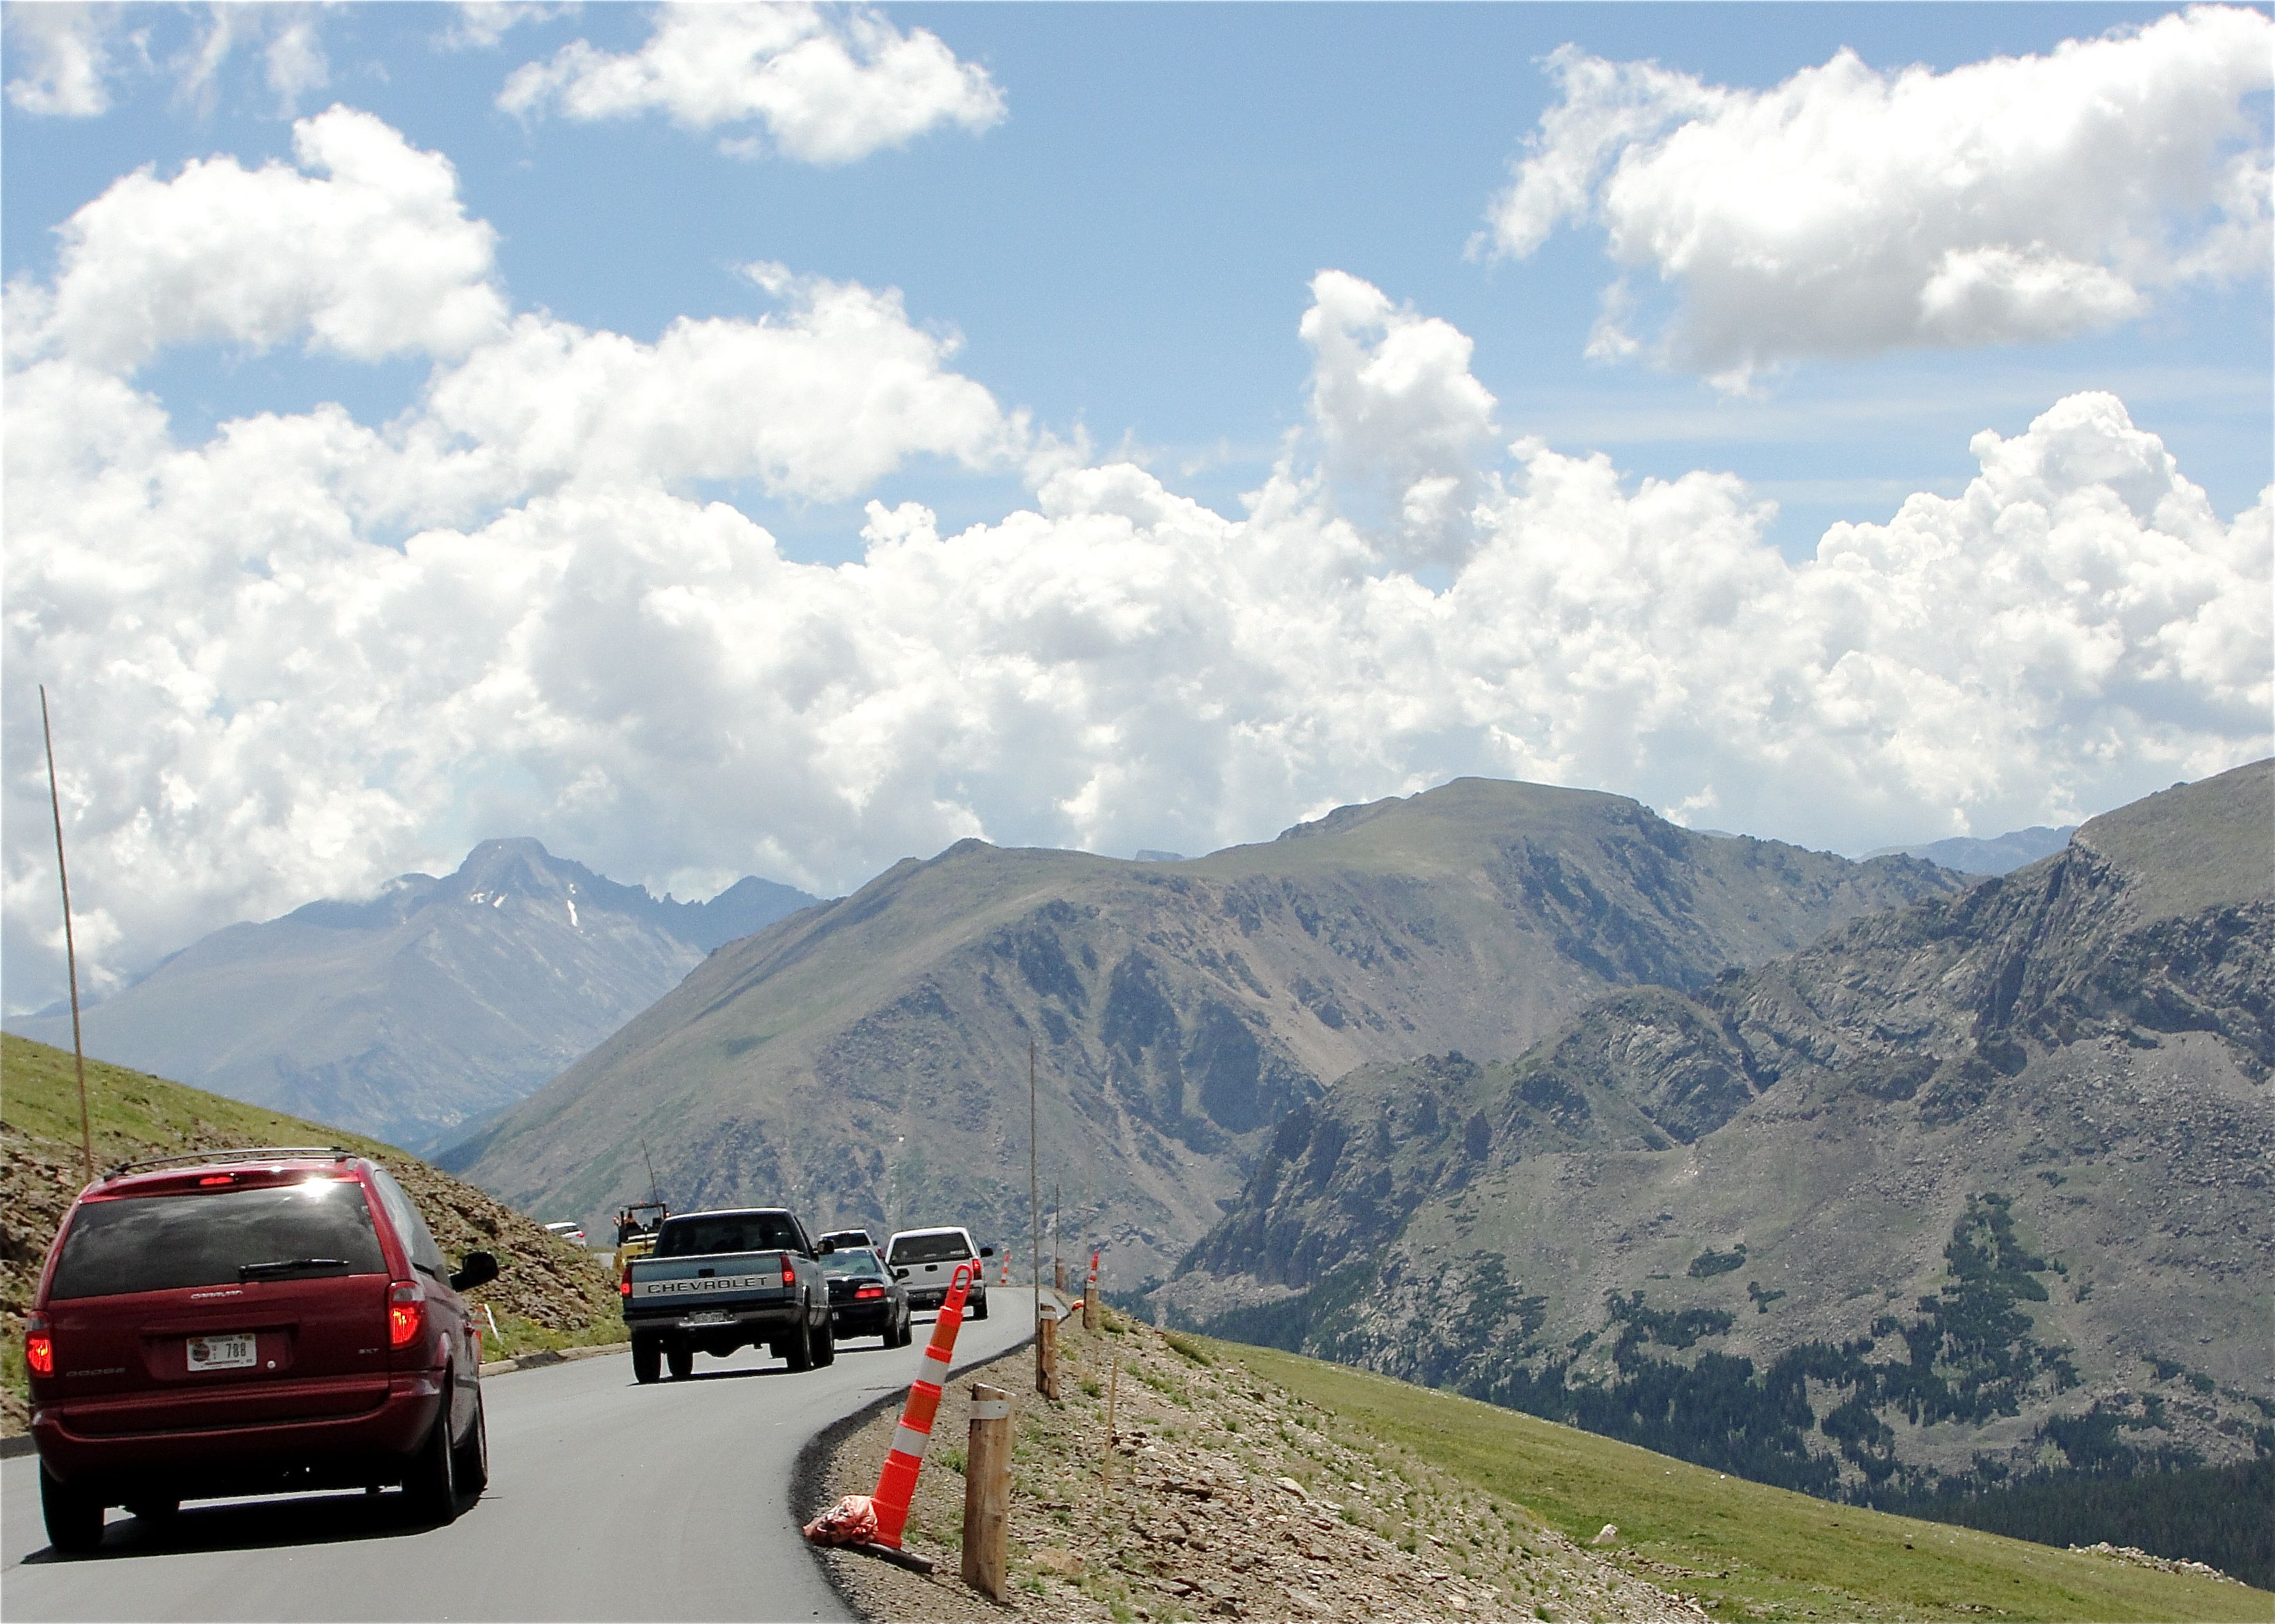 Colorado boasts the highest continuously paved highway in